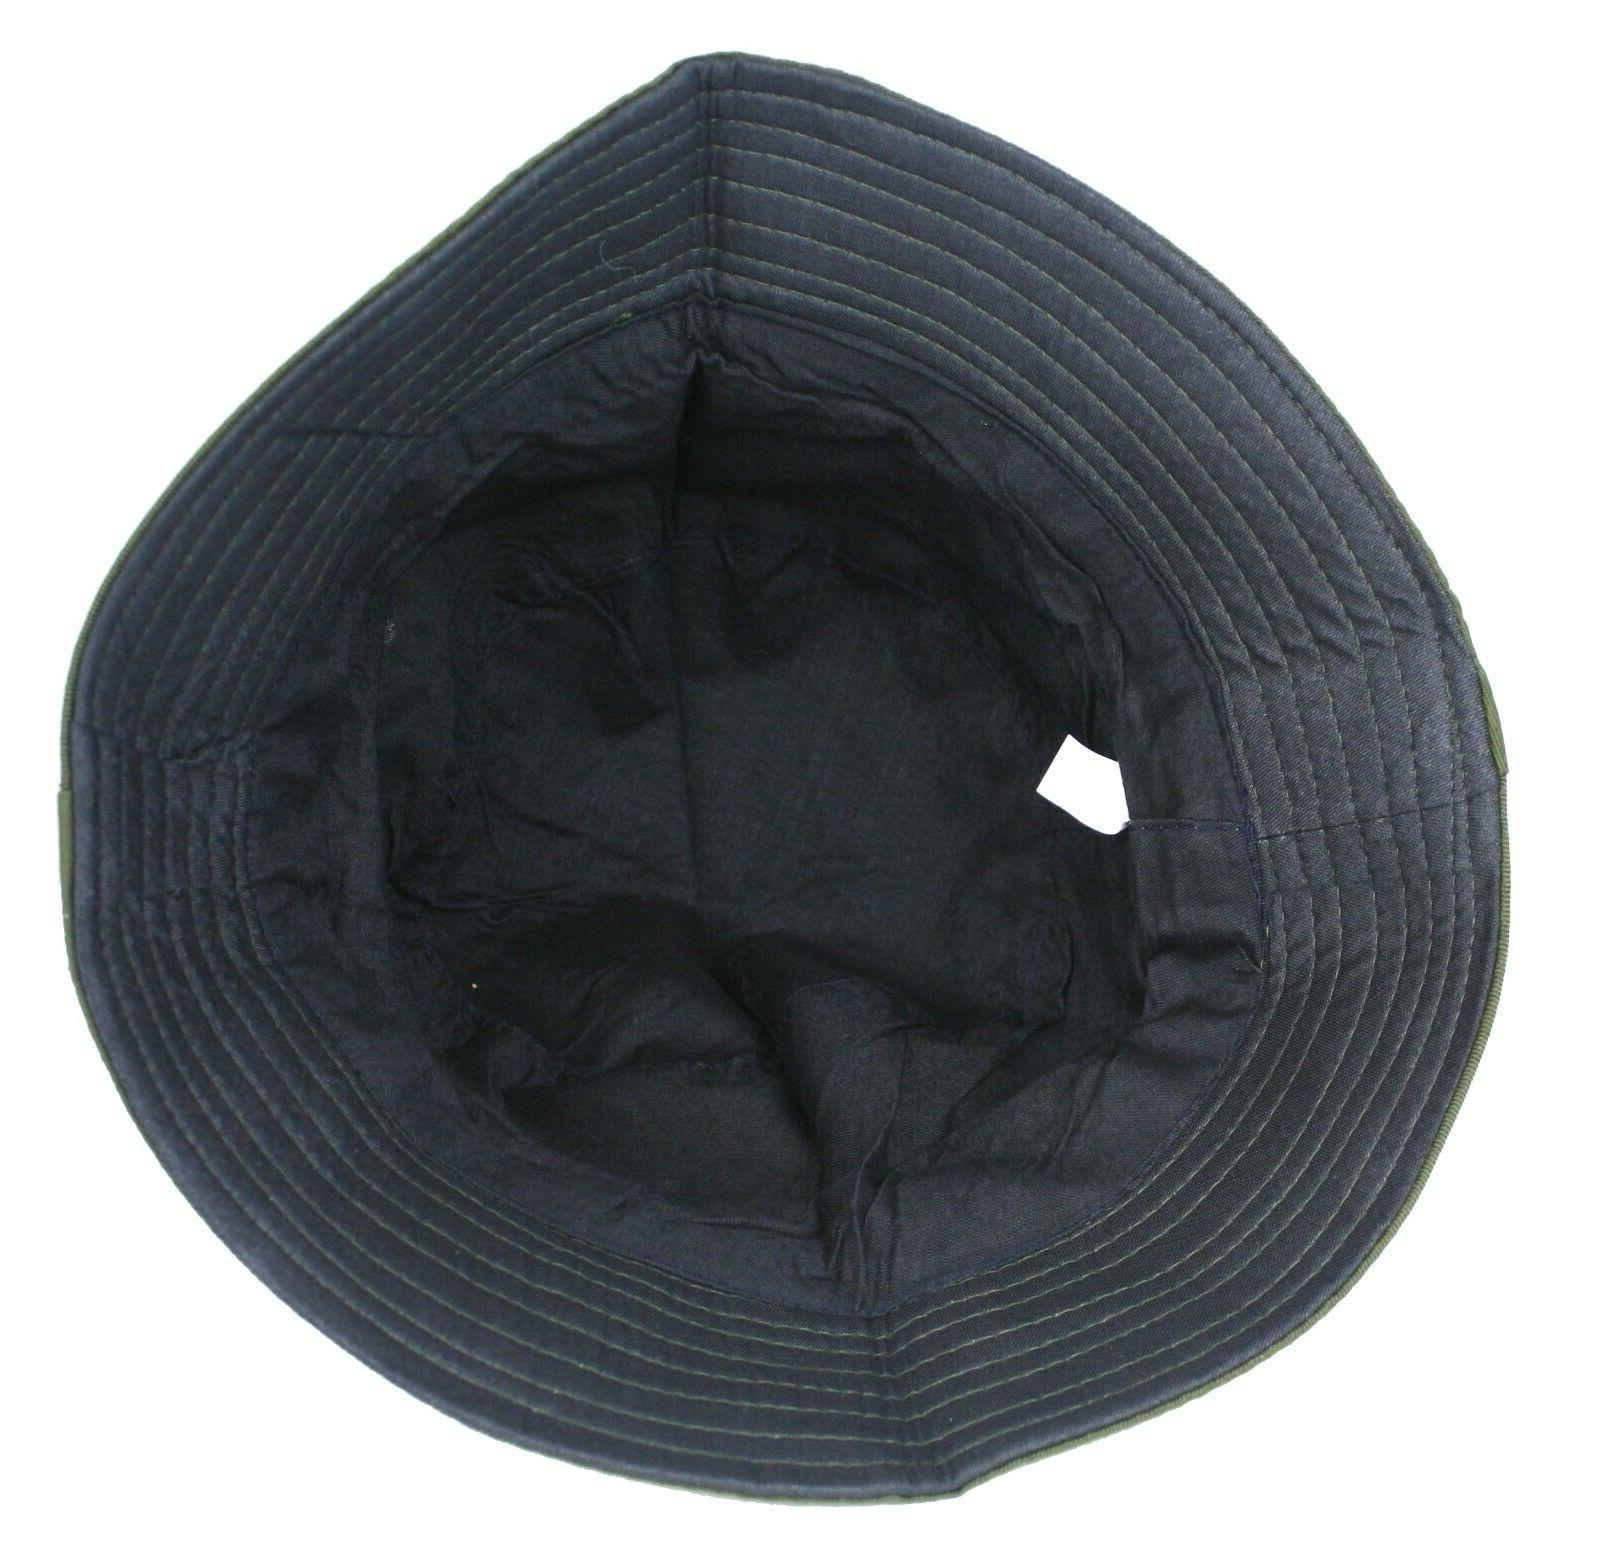 Bucket Hat Fishing Boonie Visor Sun